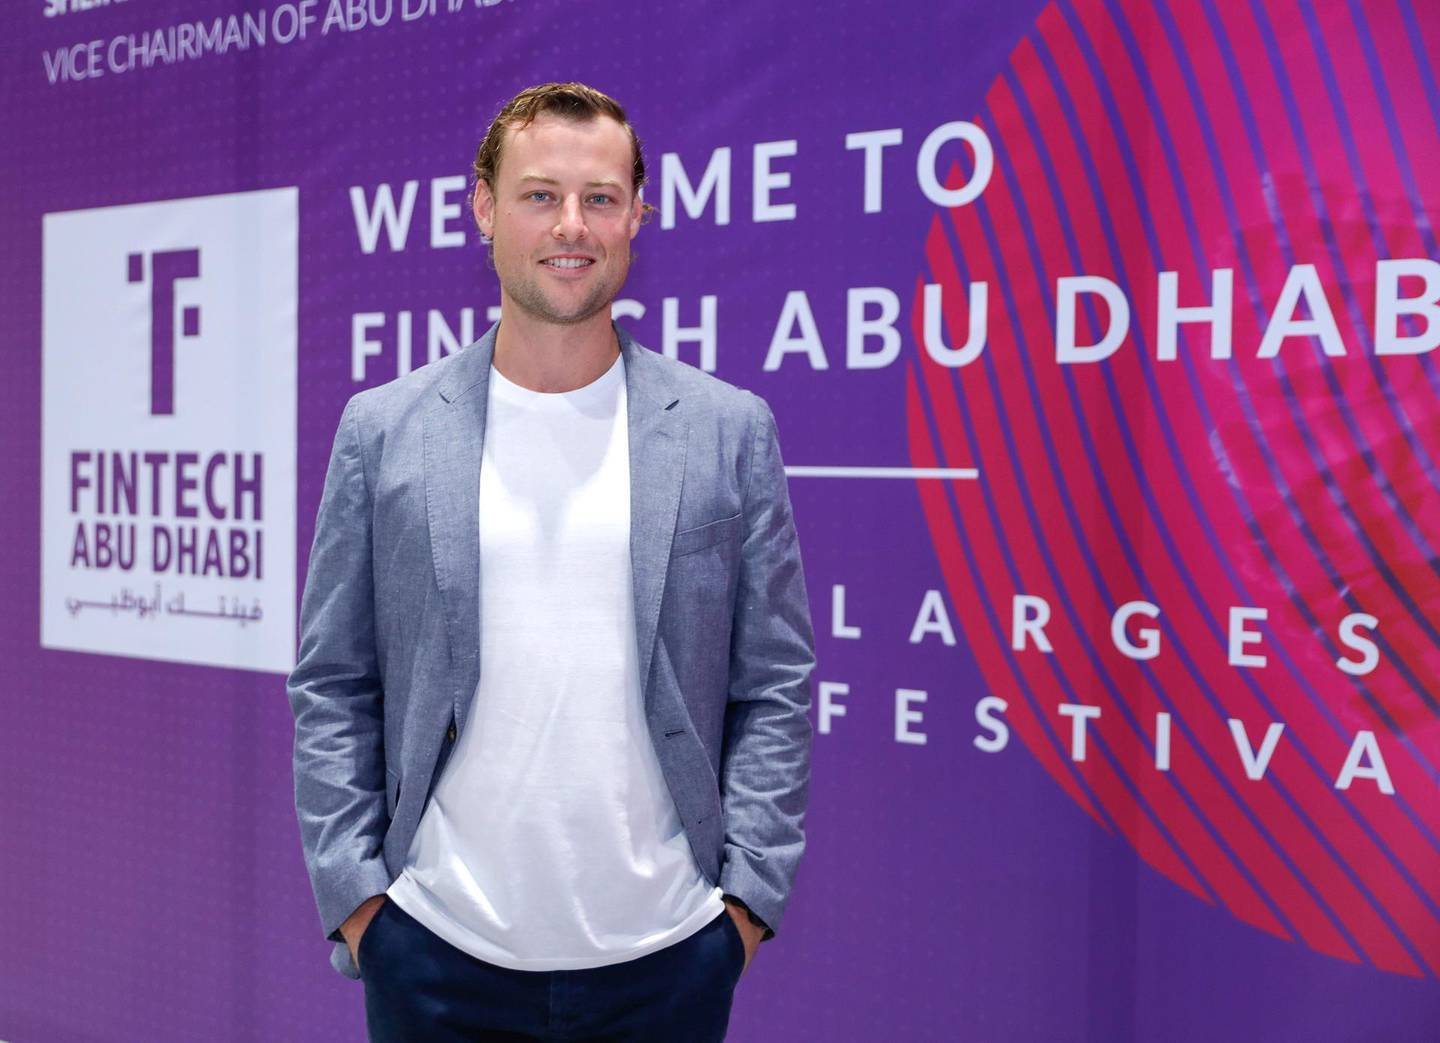 Abu Dhabi, United Arab Emirates, October 22, 2019.  Description:SECTION: BusinessSTORY BRIEF: Fintech Abu Dhabi  SUBJECT NAME: Fintech Abu Dhabi--  Tim Harley, TransferWise Head of Middle East.Victor Besa/The NationalSection:  BZReporter:  Nada El Sawy